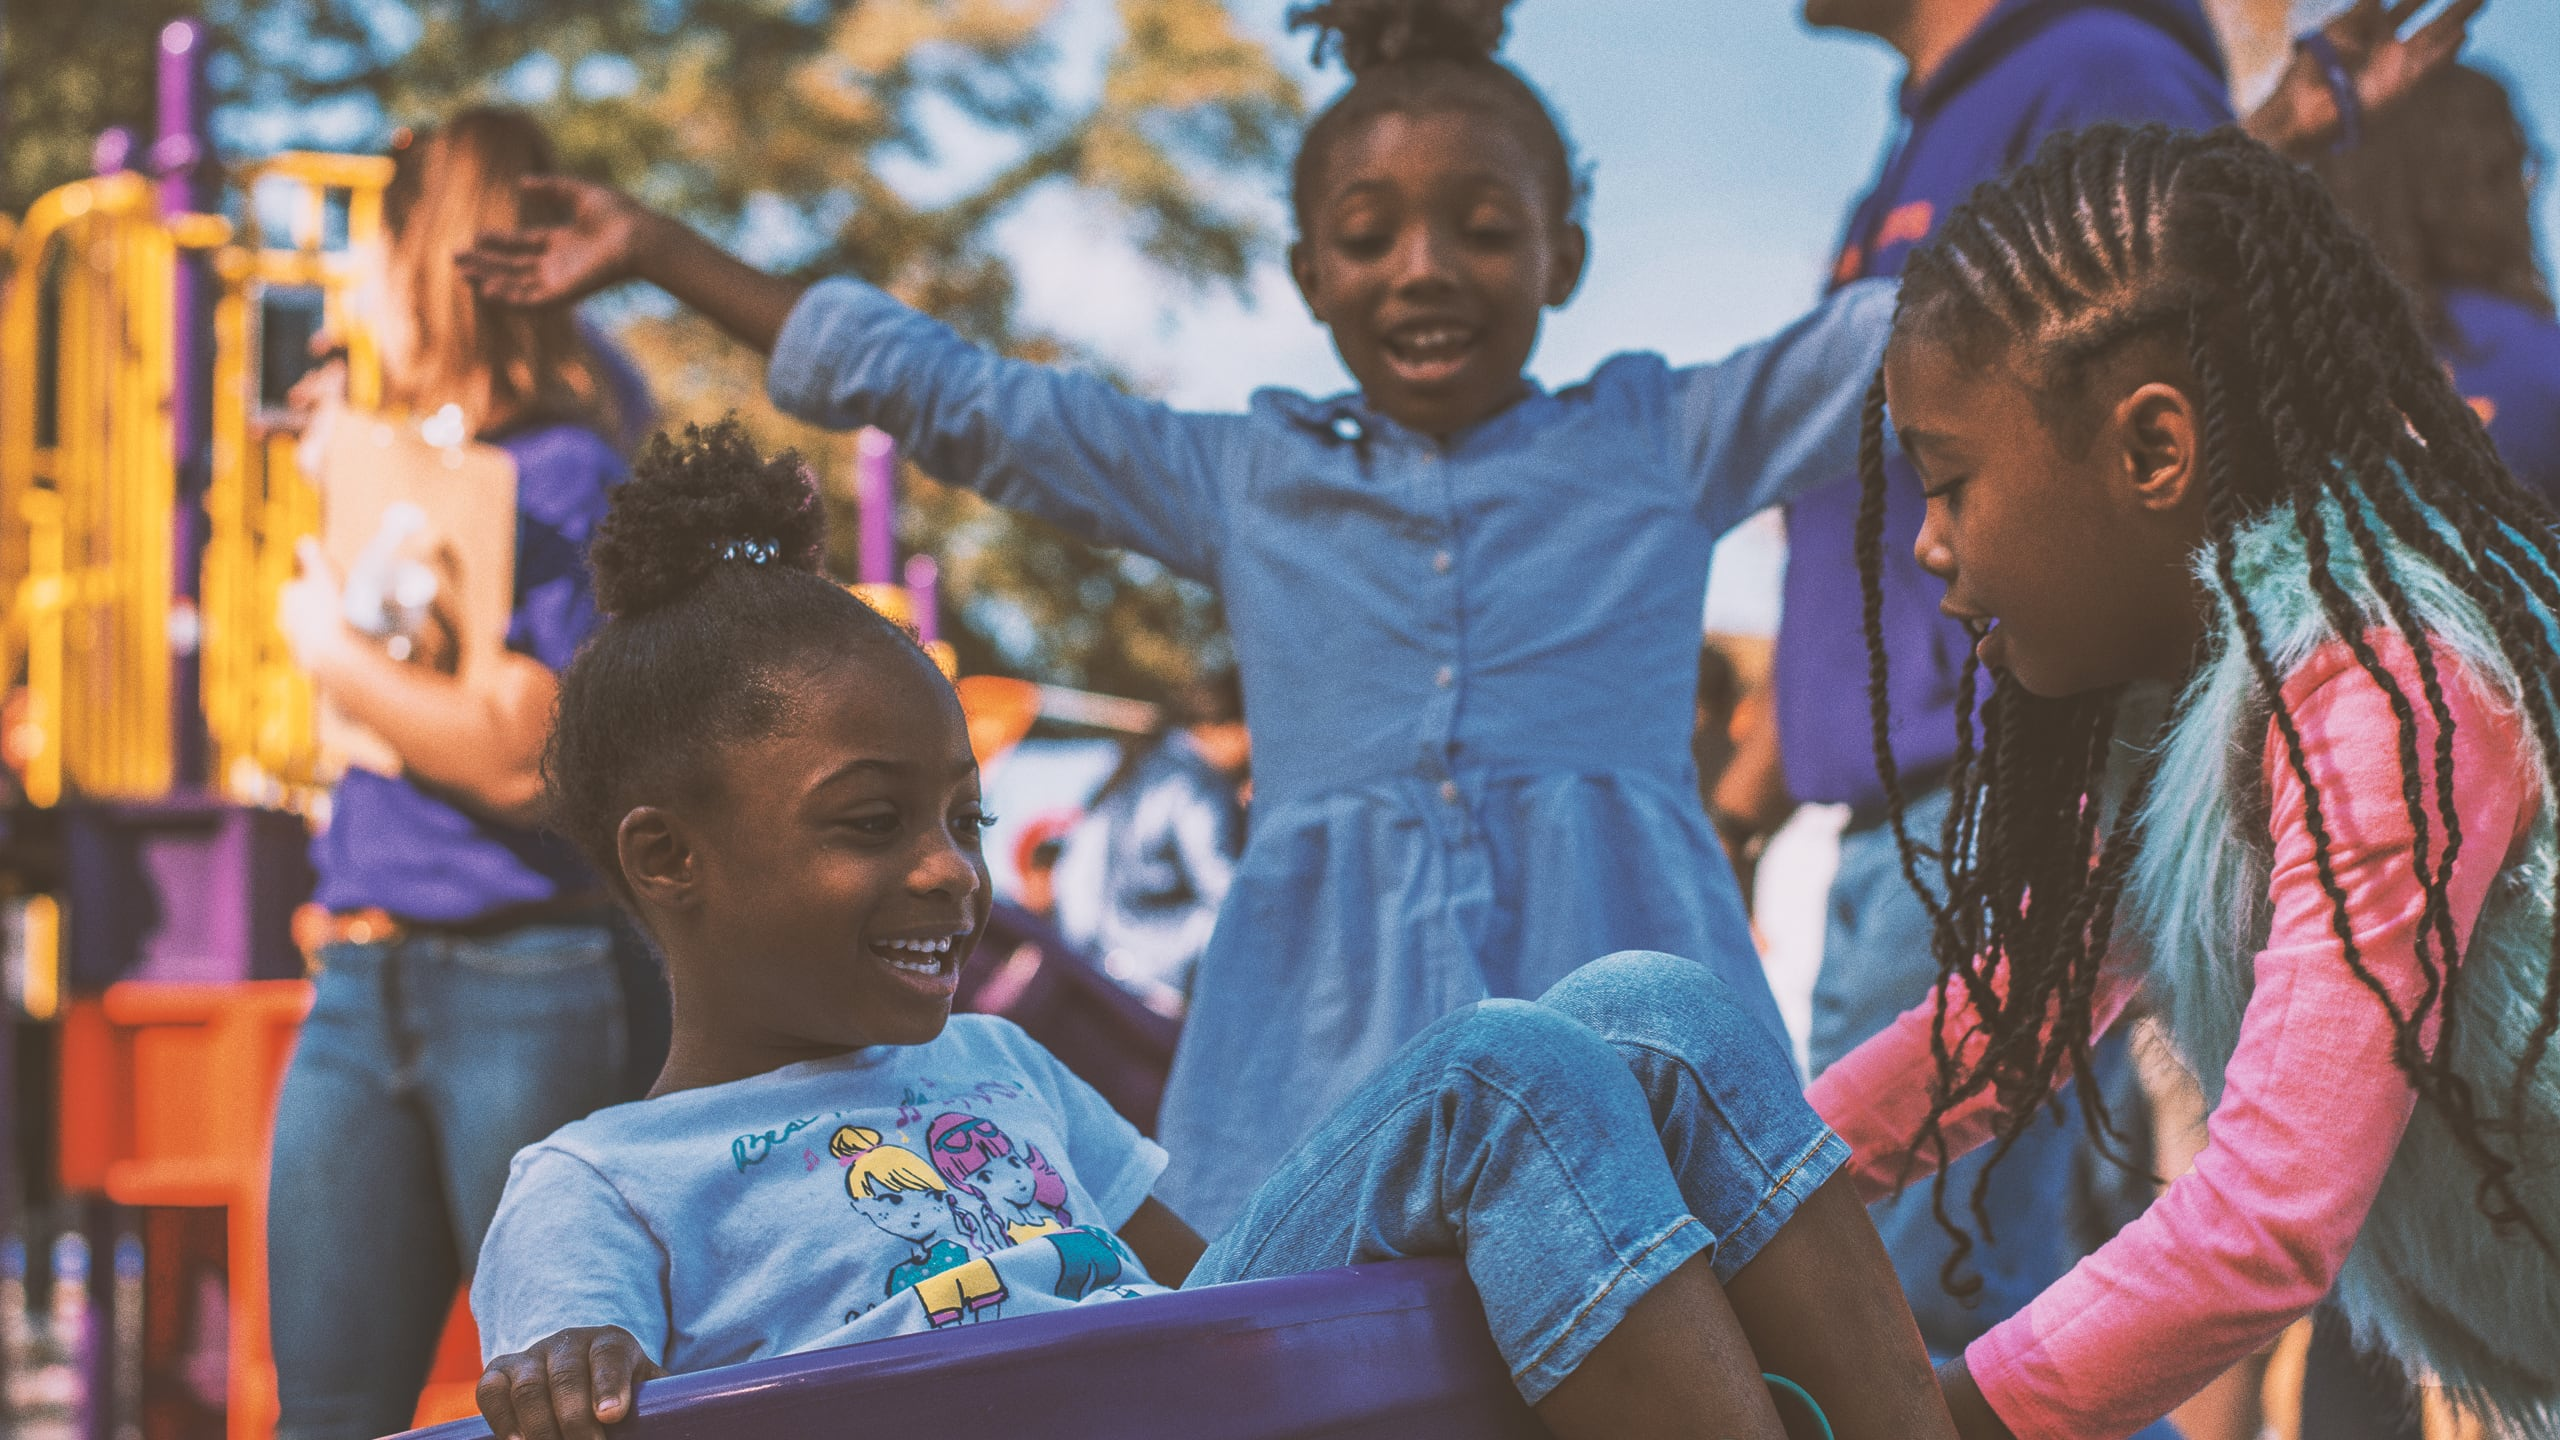 Image of girls playing on play set